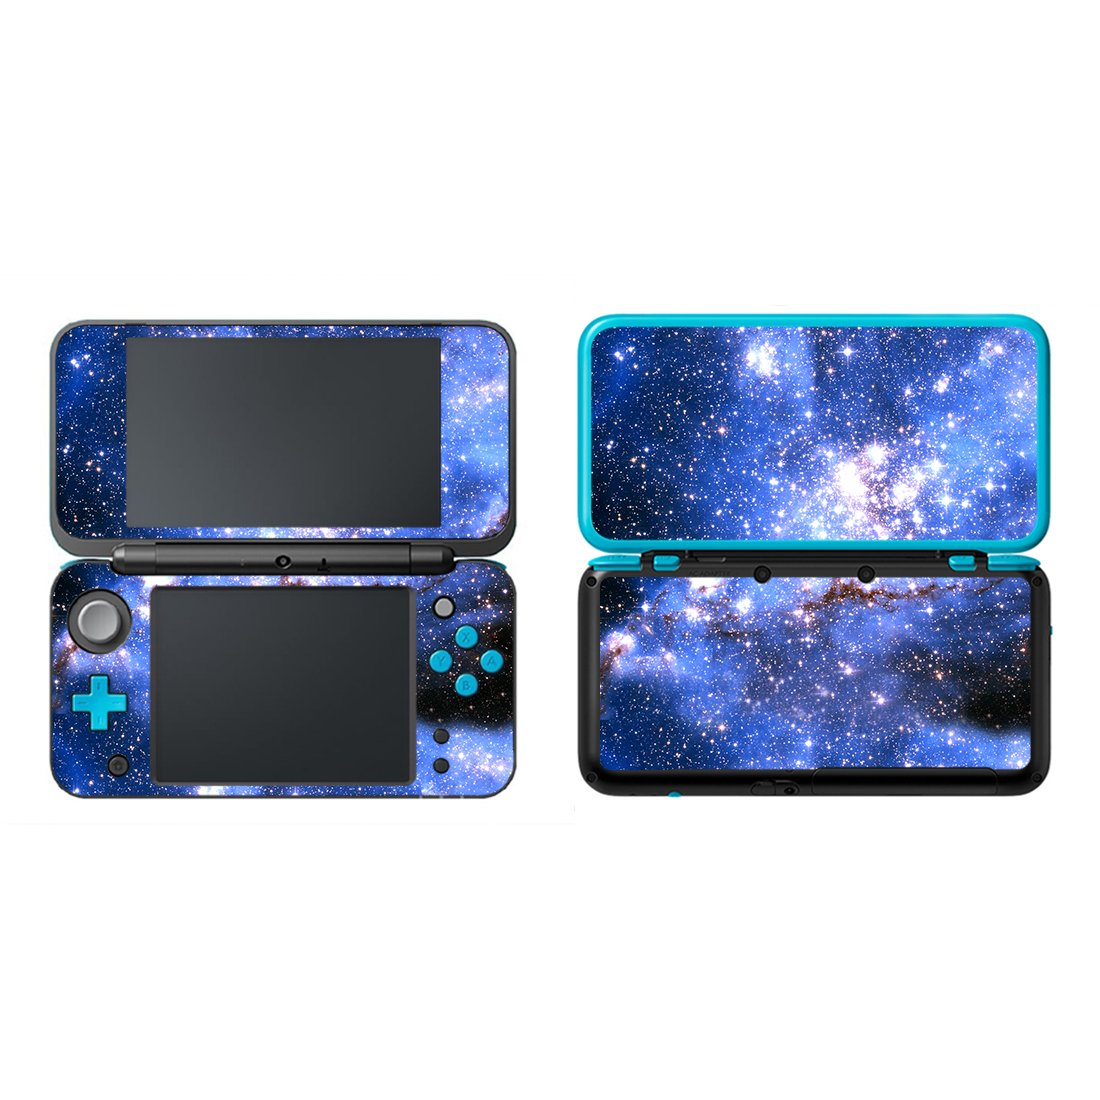 UUShop Protective Vinyl Skin Sticker Cover Wrap for New Nintendo 2DS XL/LL Blue Starry Sky